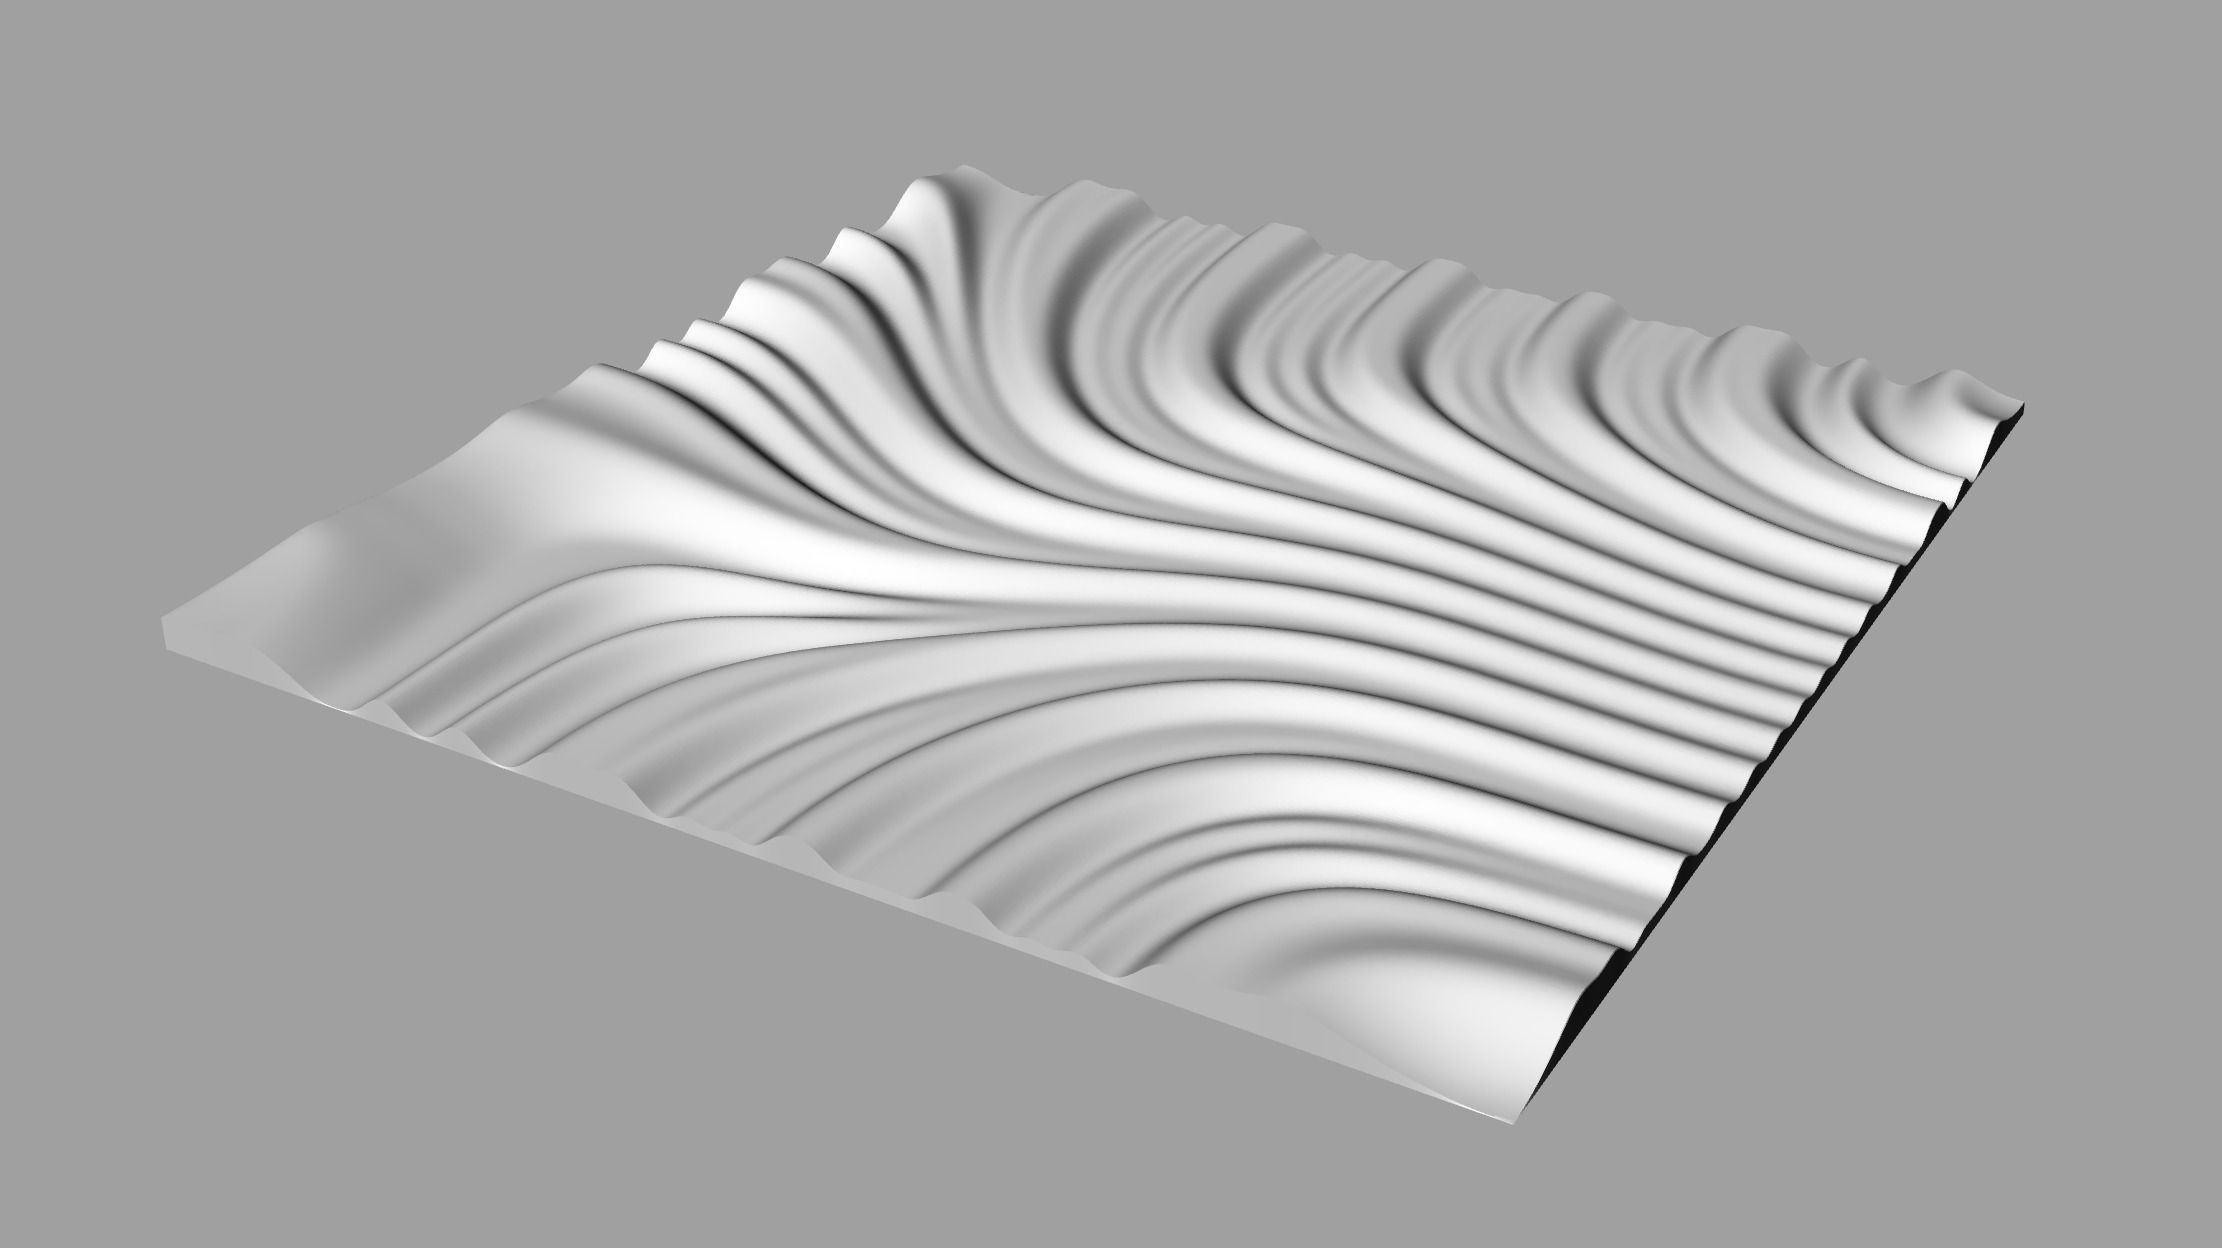 Tileable d relief sb for cnc model printable obj